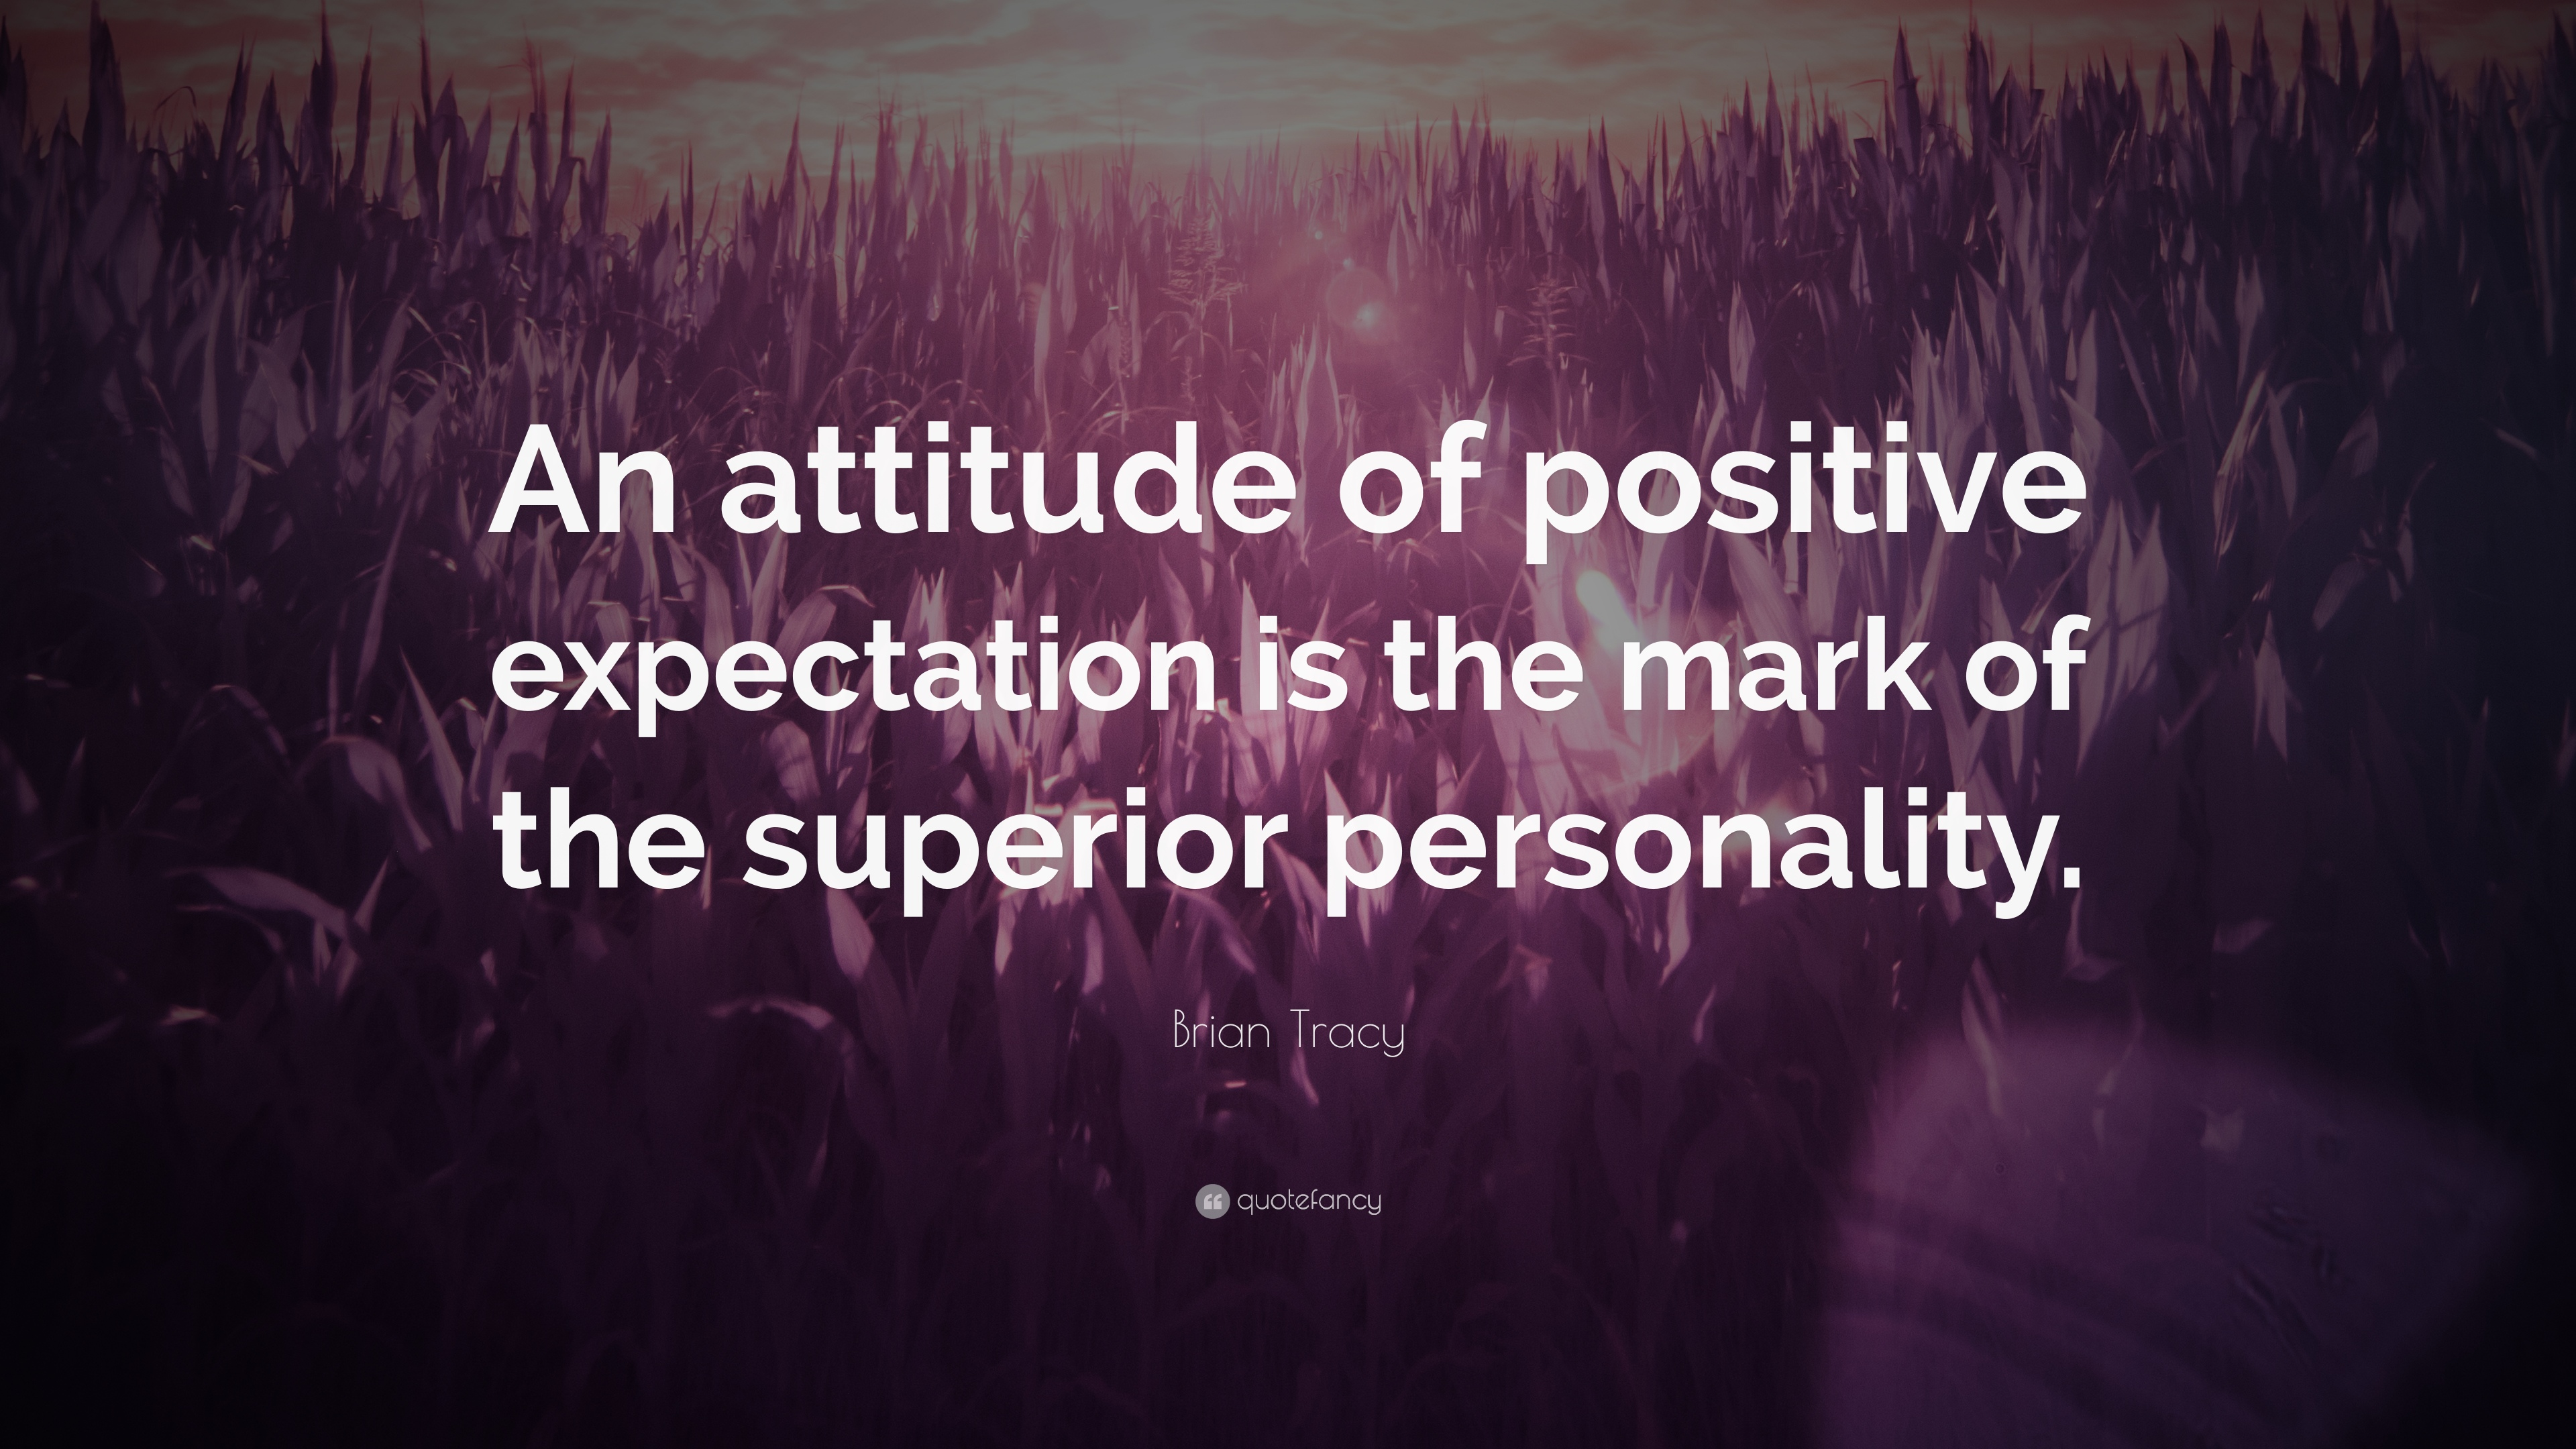 positive quotes quotefancy positive quotes an attitude of positive expectation is the mark of the superior personality